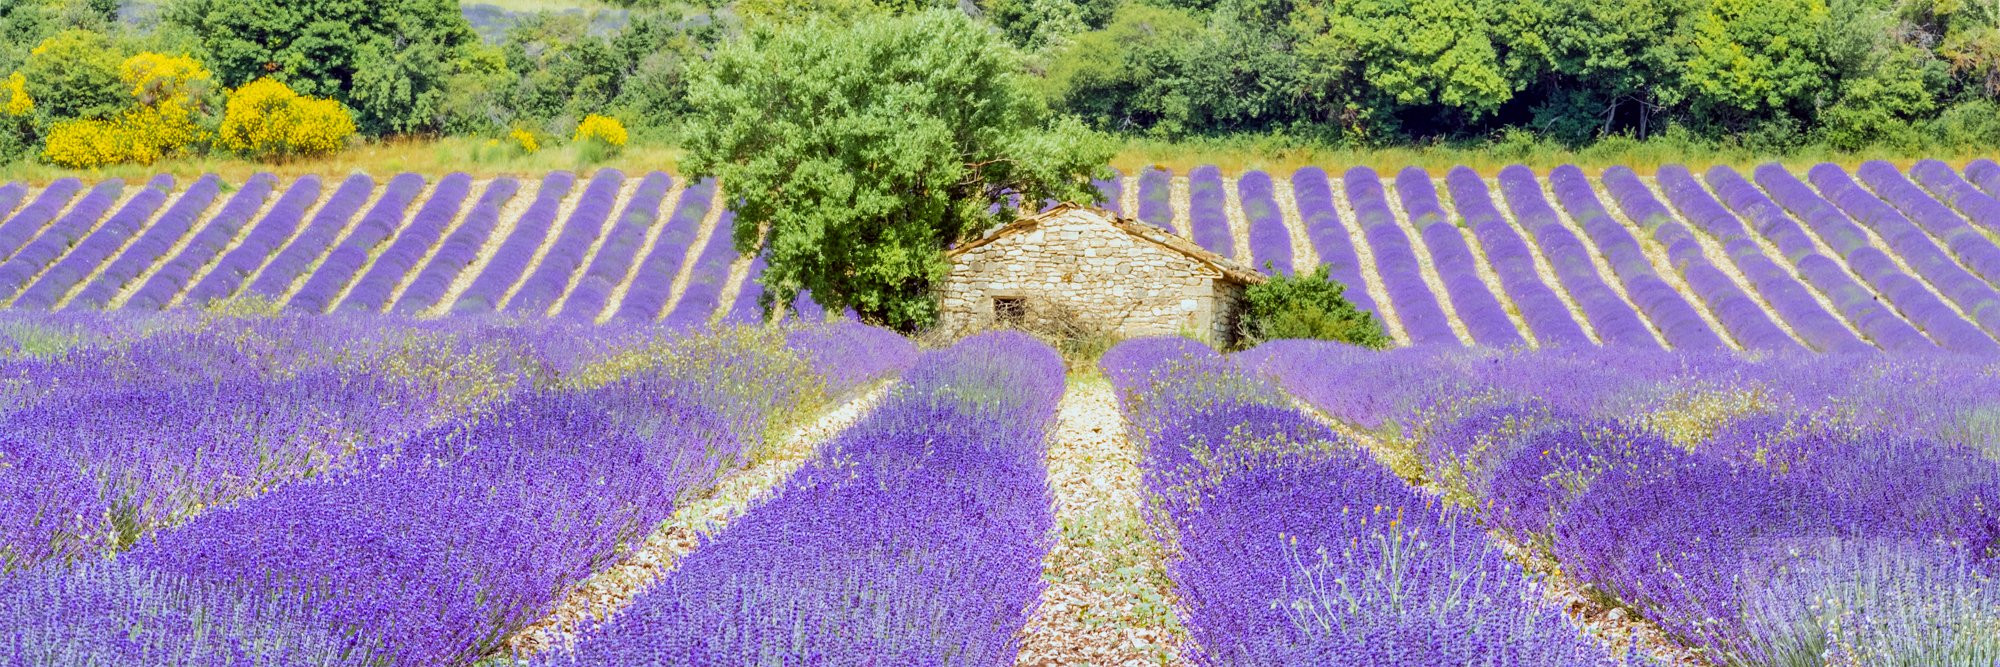 Sault lavender fields and stone house, France